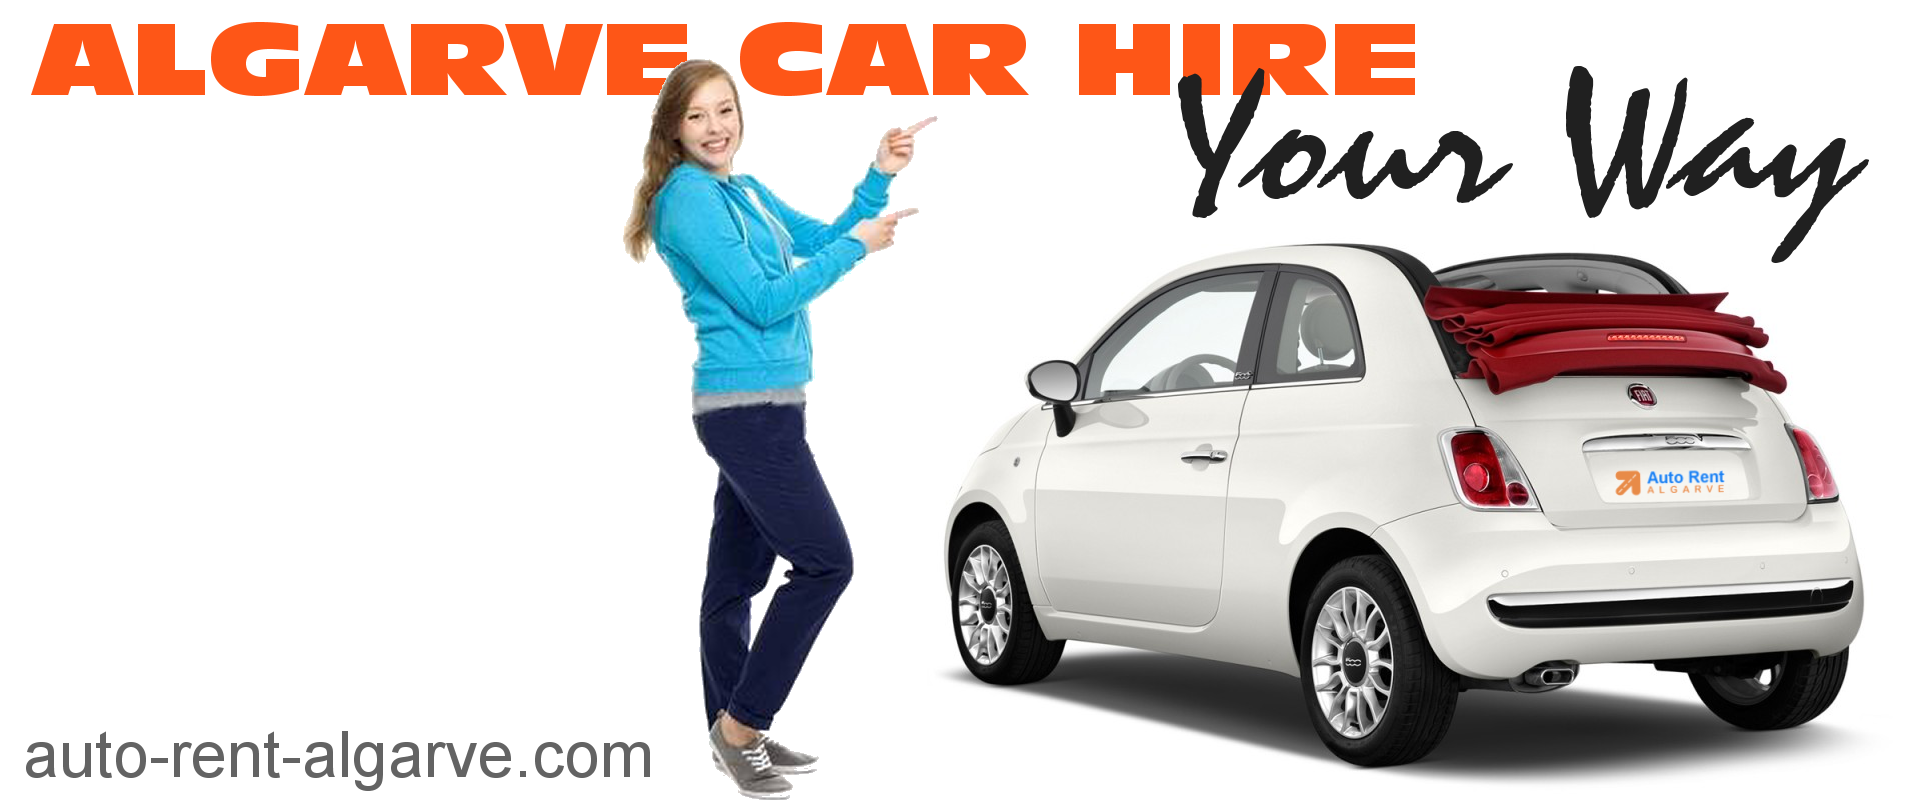 Faro Car Hire Best Service